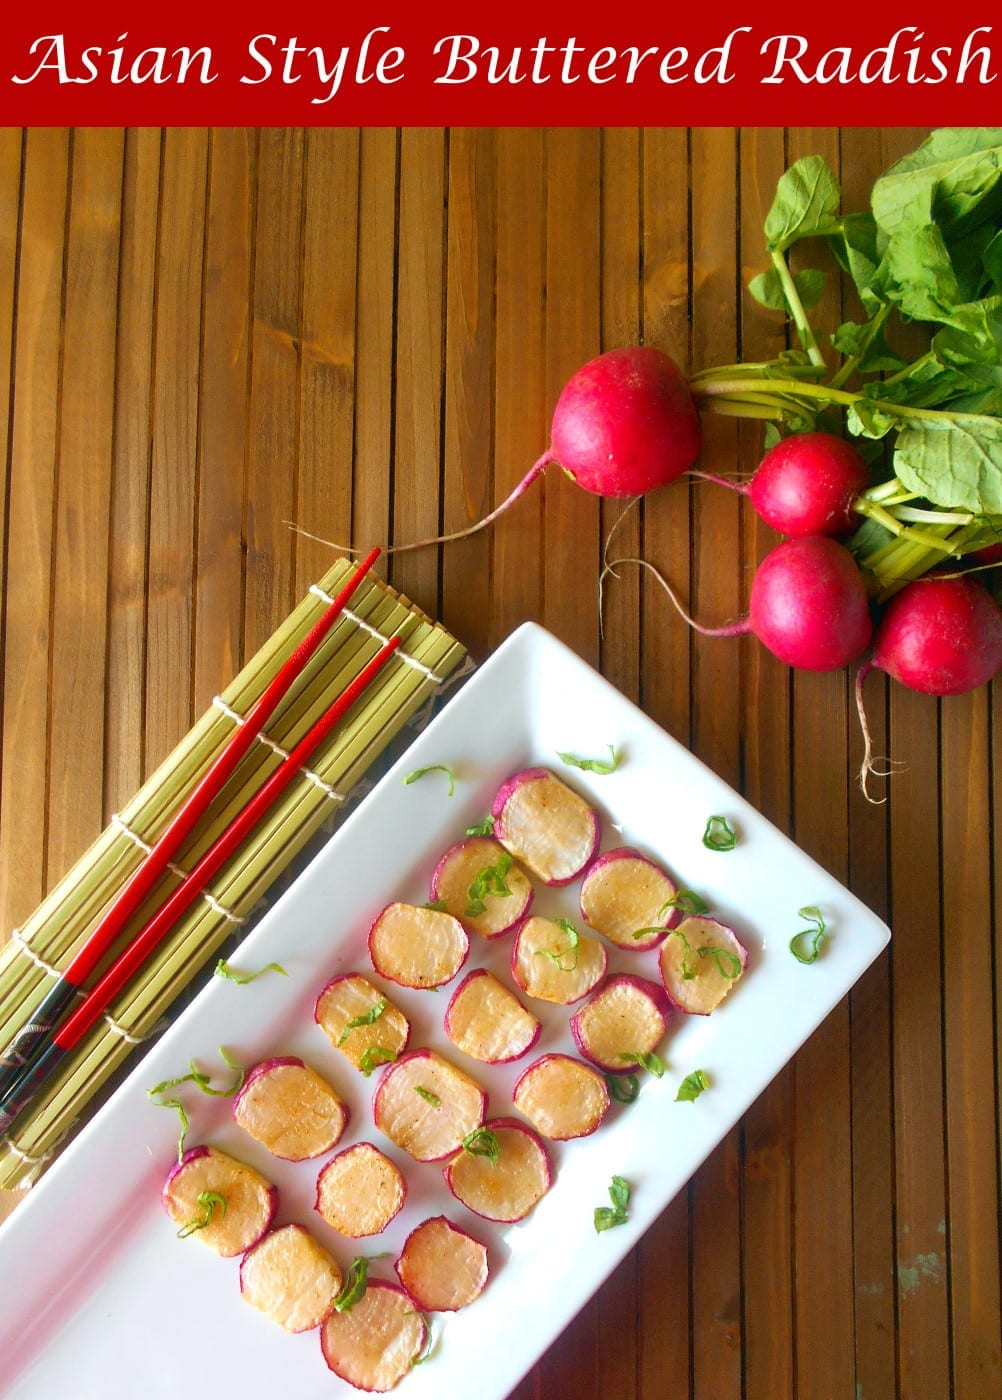 Buttered Radishes Made Japanese Style - Takes less than 30 Minutes